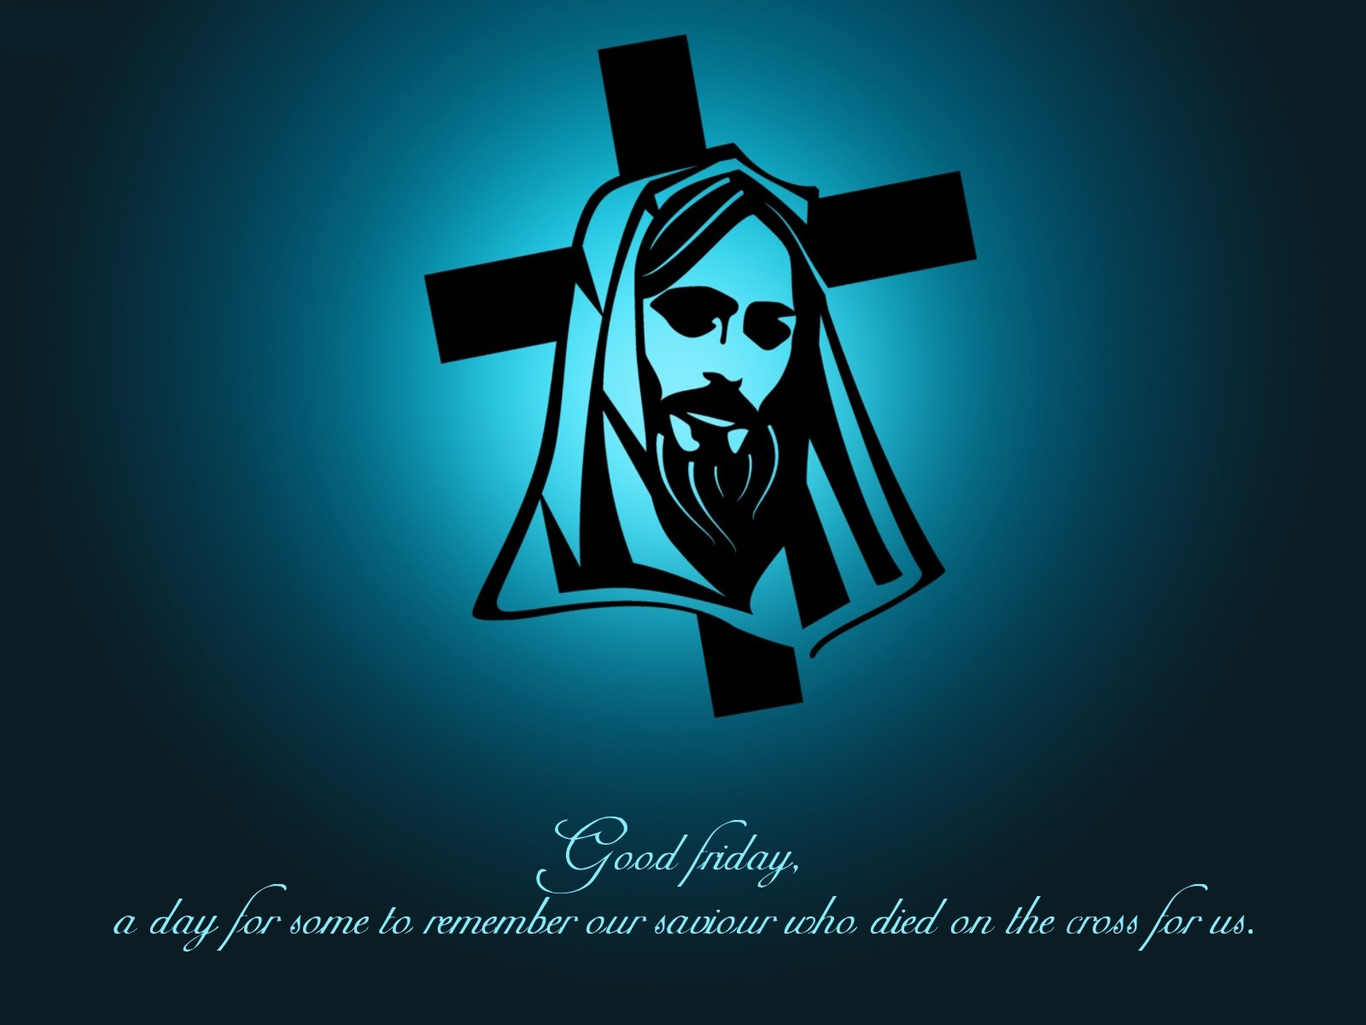 Happy good friday quotes 2017 for faceook in english and hindi happy good friday quotes voltagebd Choice Image